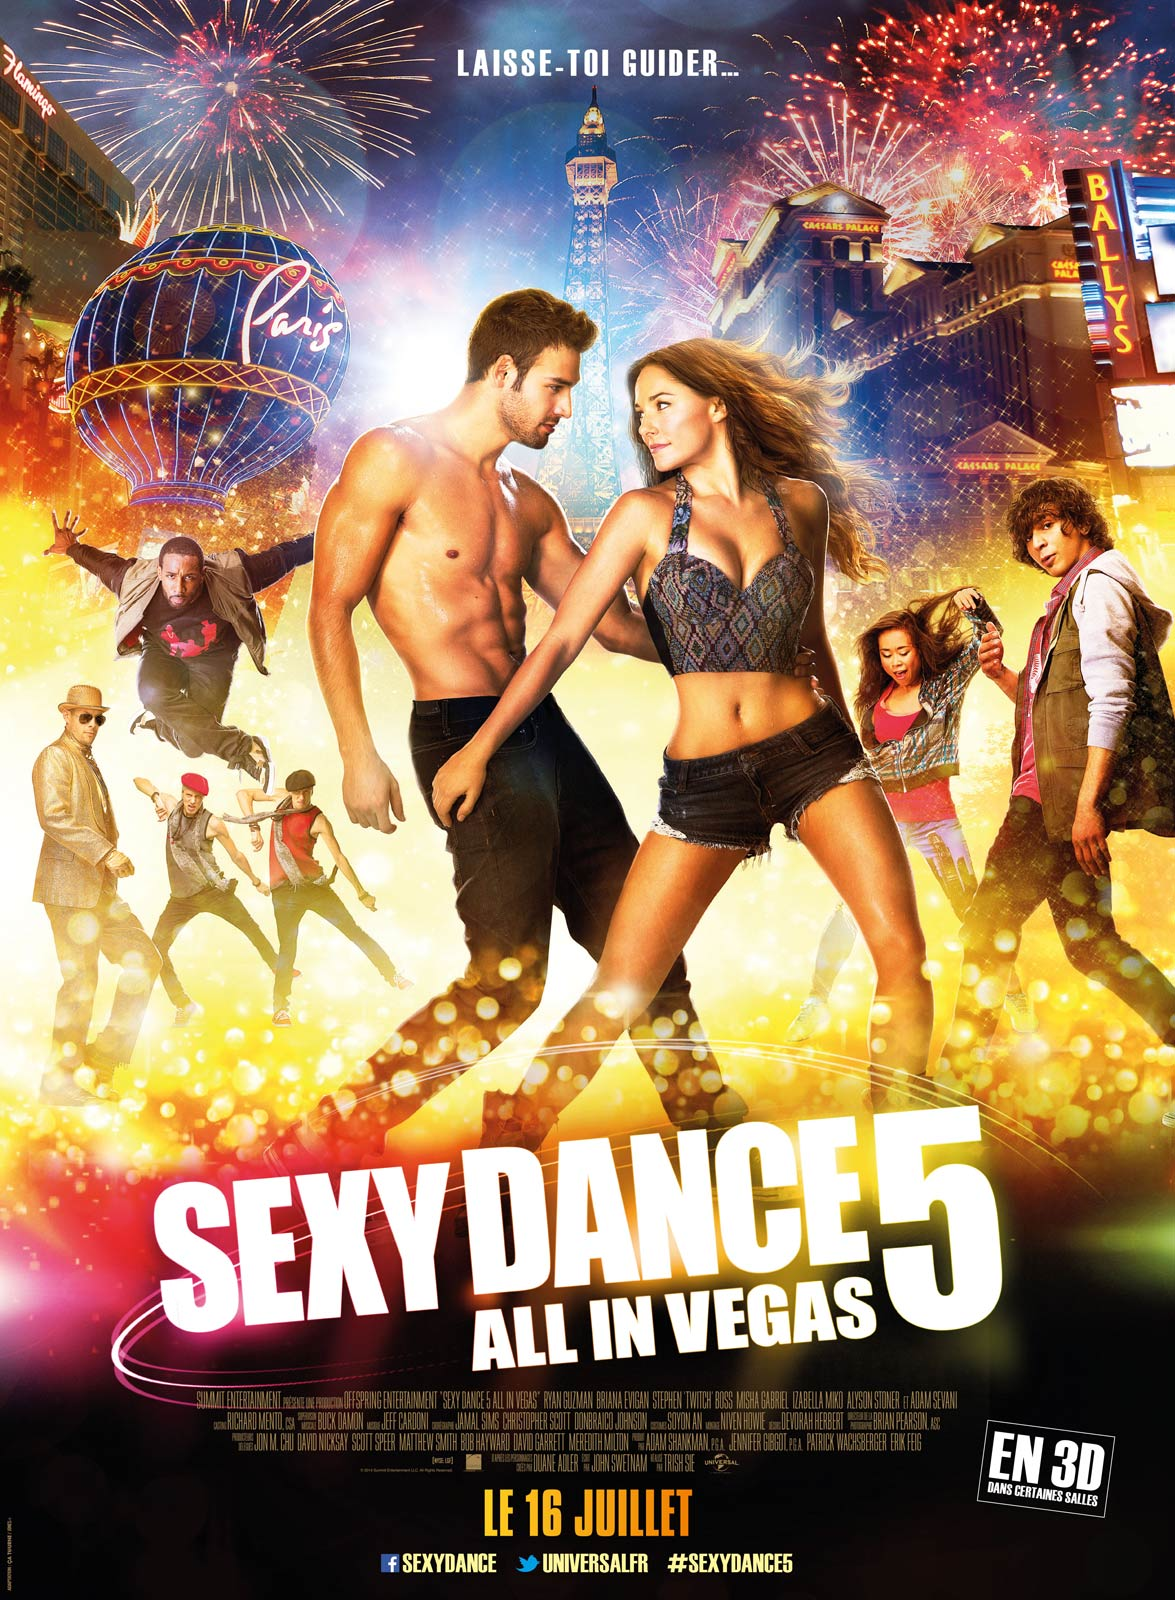 Sexy Dance 5 - All In Vegas | Multi | 2CD | TrueFrench | HDRip | 2014